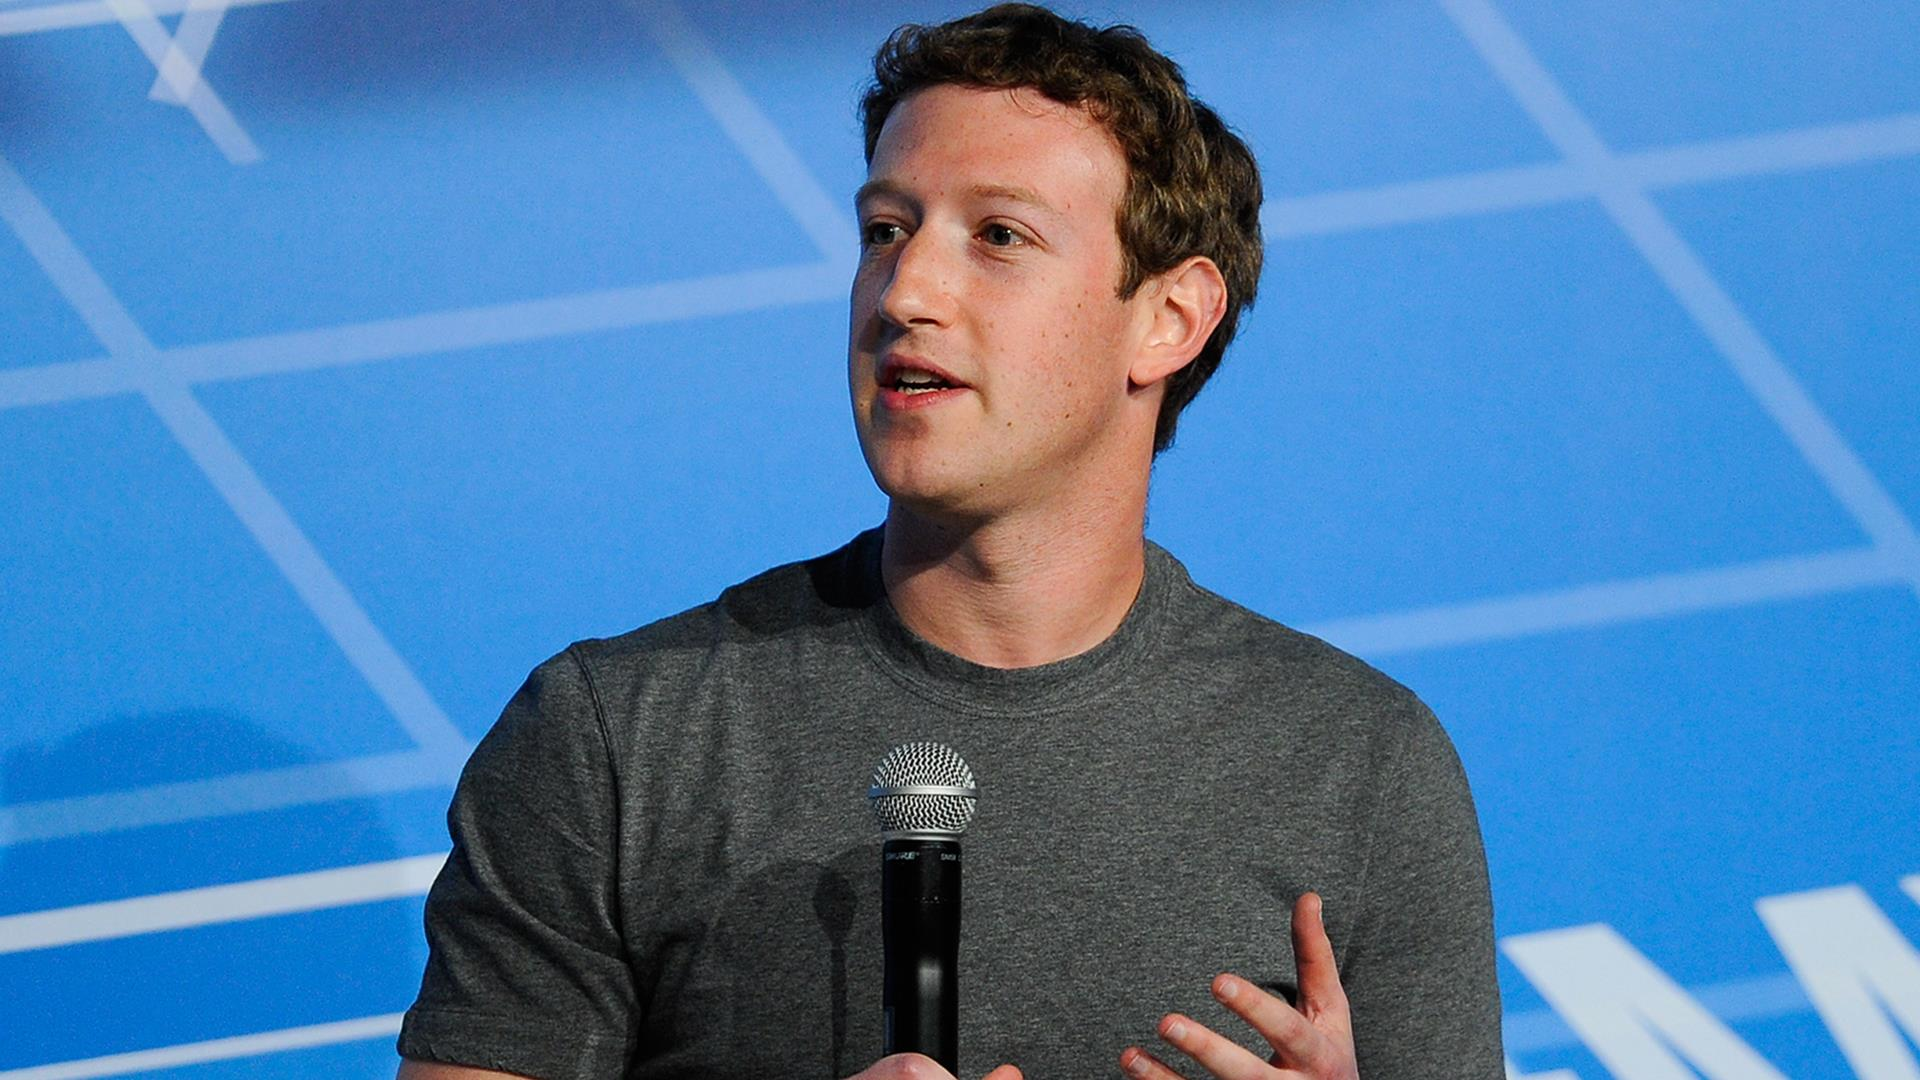 Could Facebook CEO Mark Zuckerberg be considering a run for president?